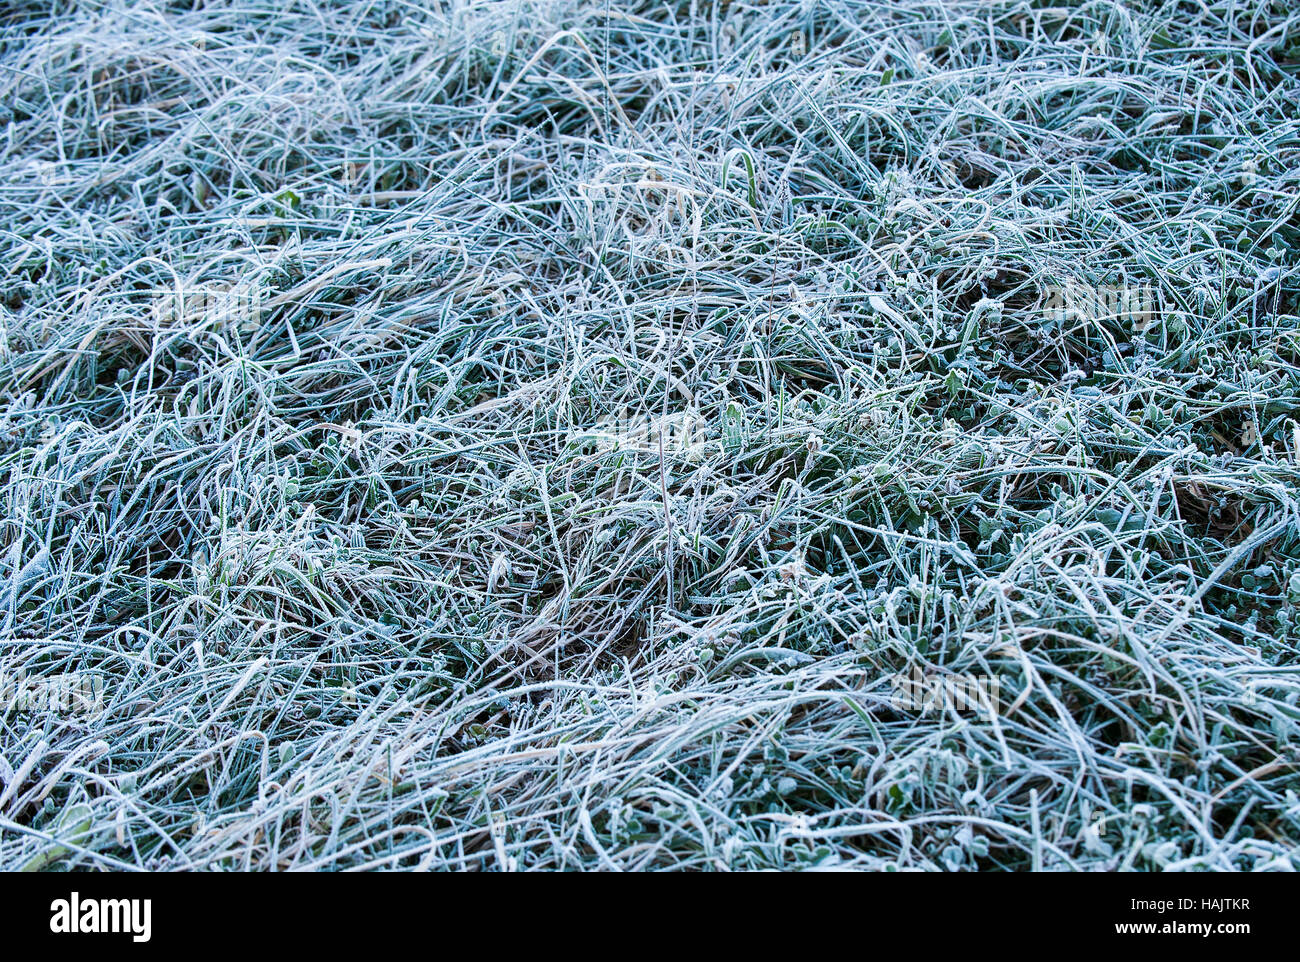 Morning ice frost on the ground - Stock Image